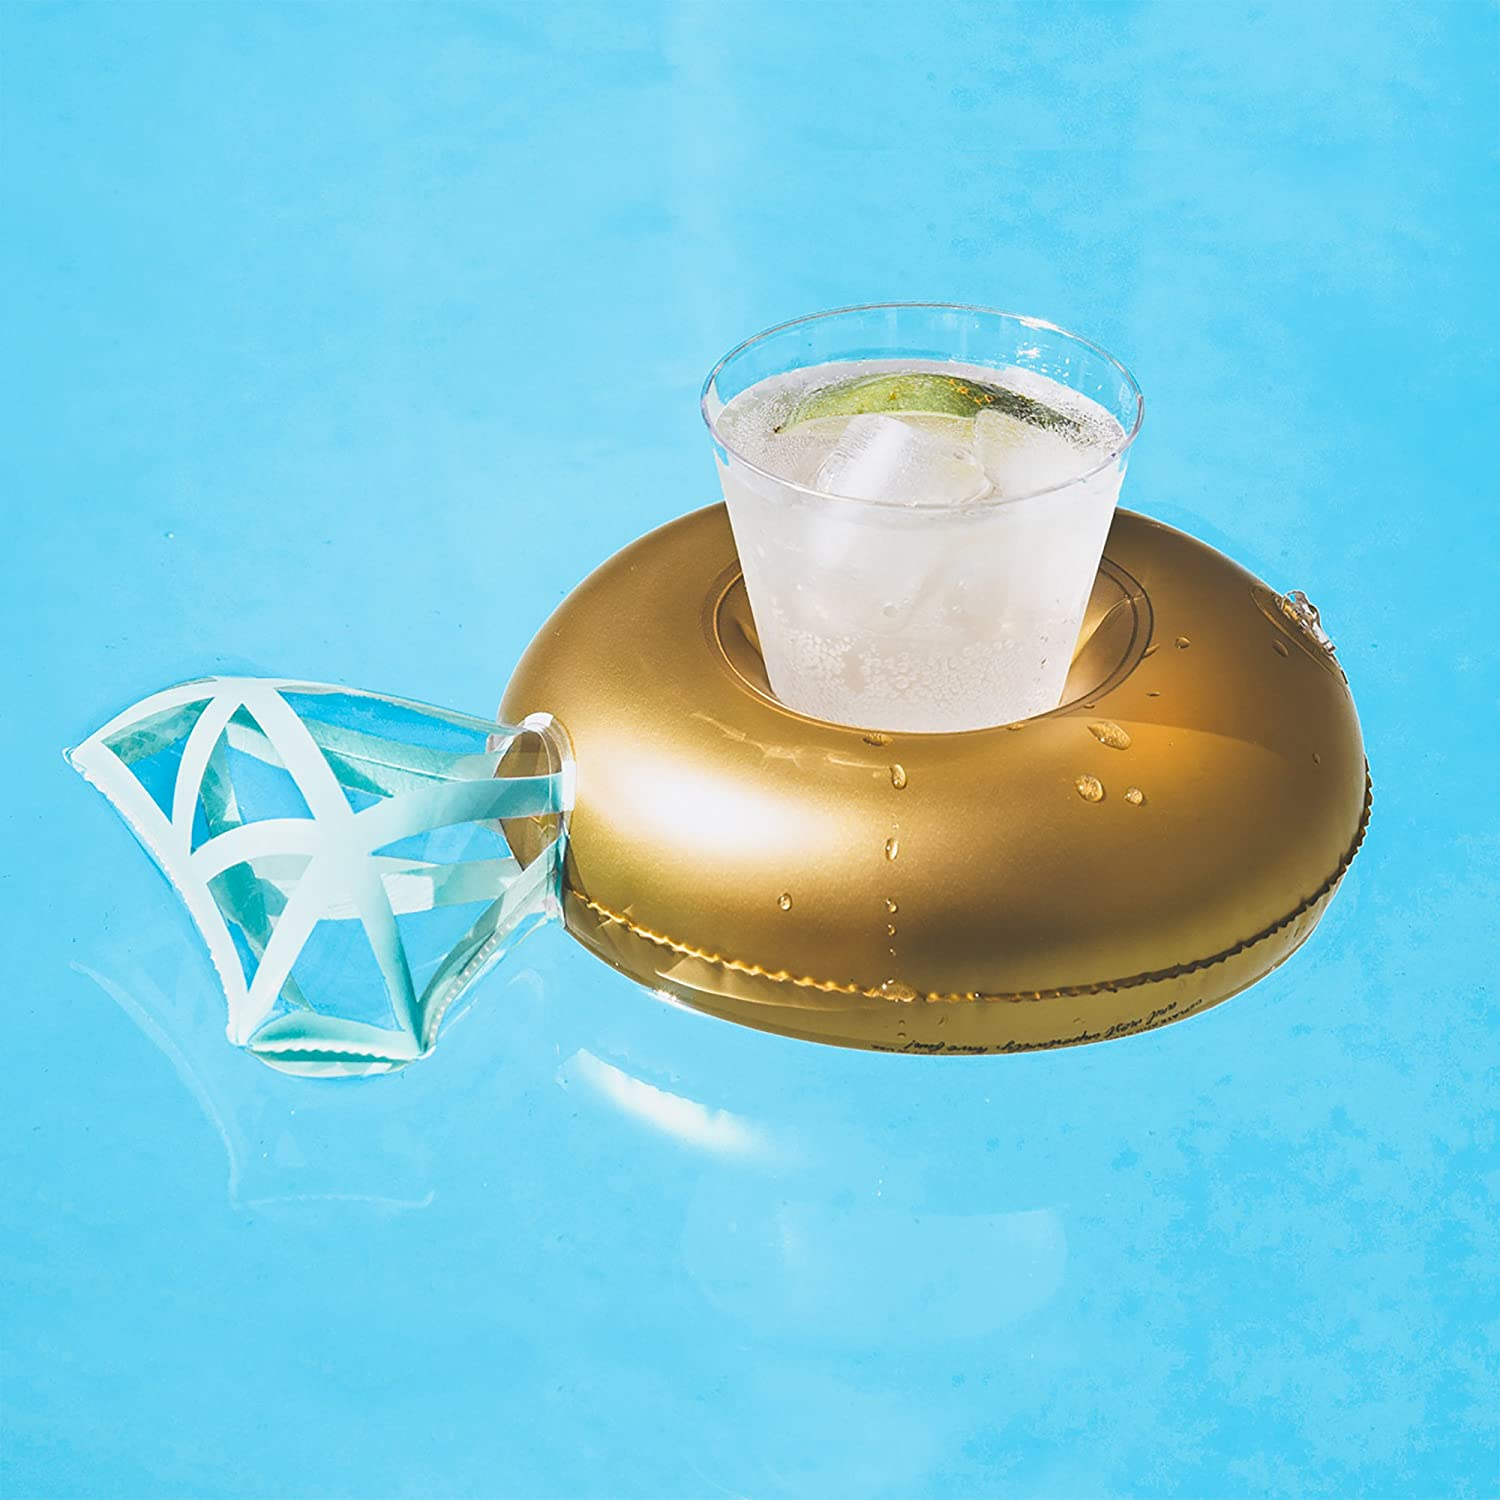 Amazon 4 Pack Gold Diamond Pool Rings Drink Cup Holder Bling For Any Bachelorette Party By Frctl Small Toys Games: Wedding Ring Pool Toy At Reisefeber.org